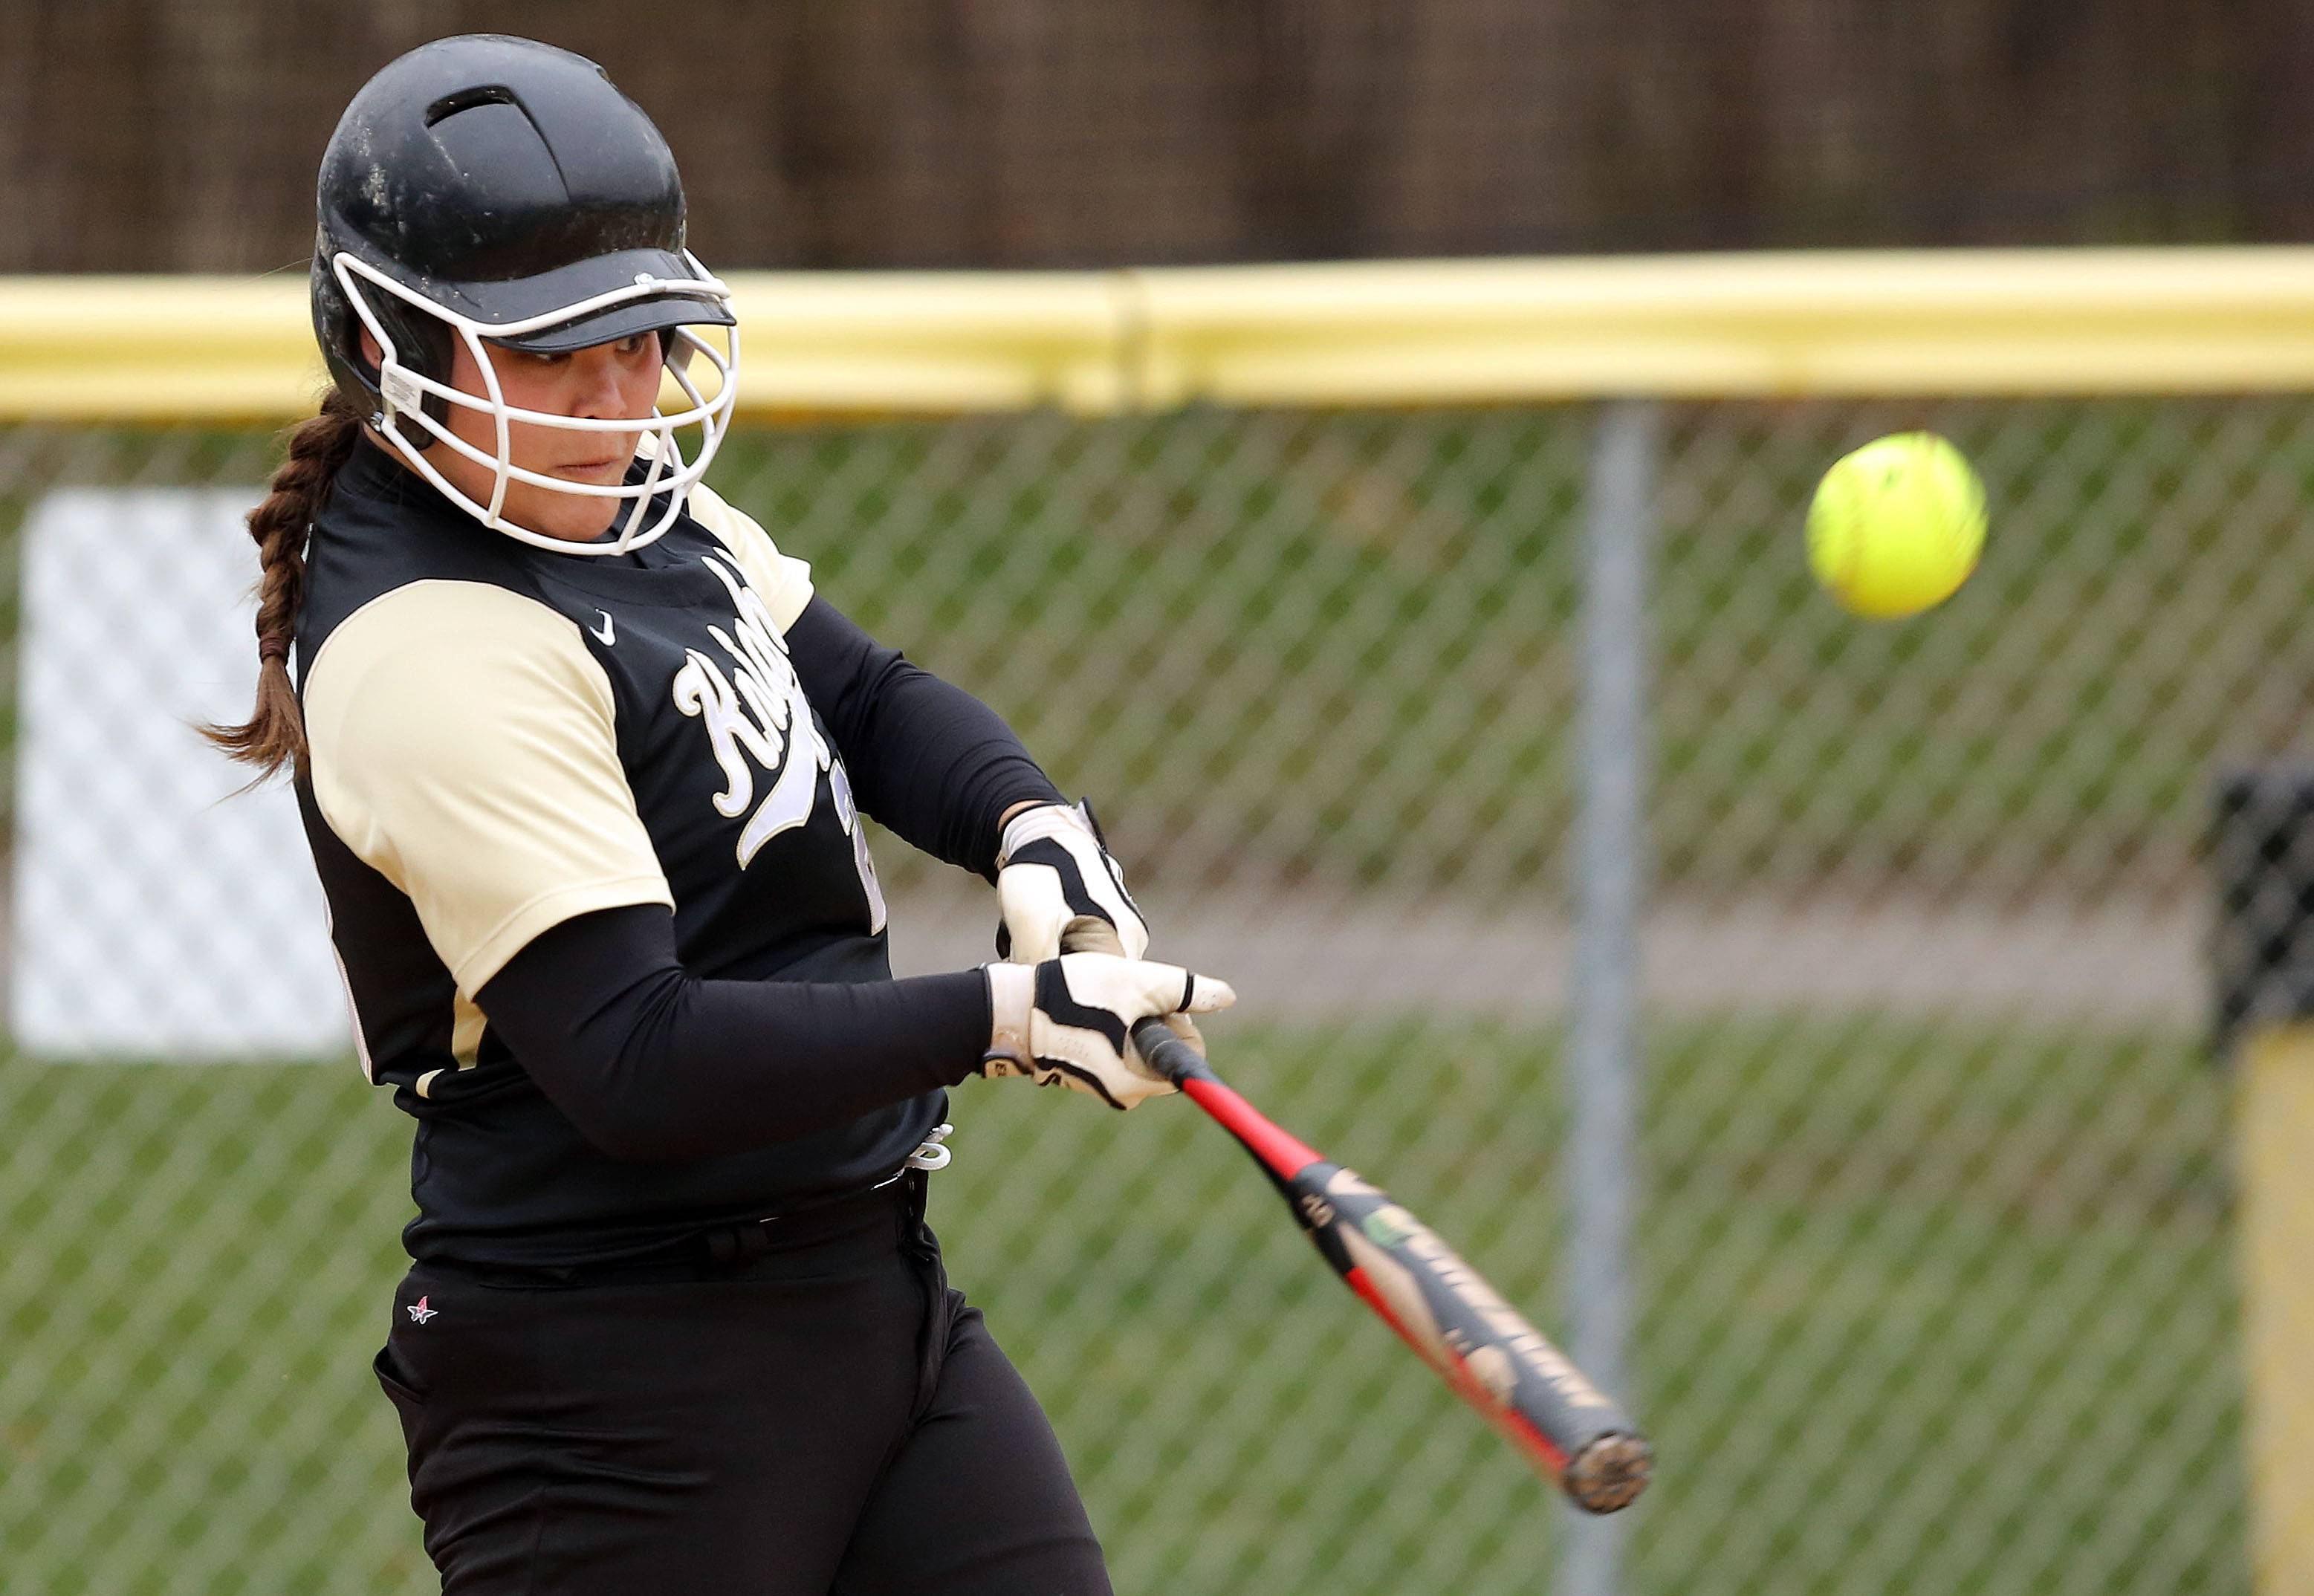 Grayslake North's Sarah Littleton connects on Monday at Grayslake Central.